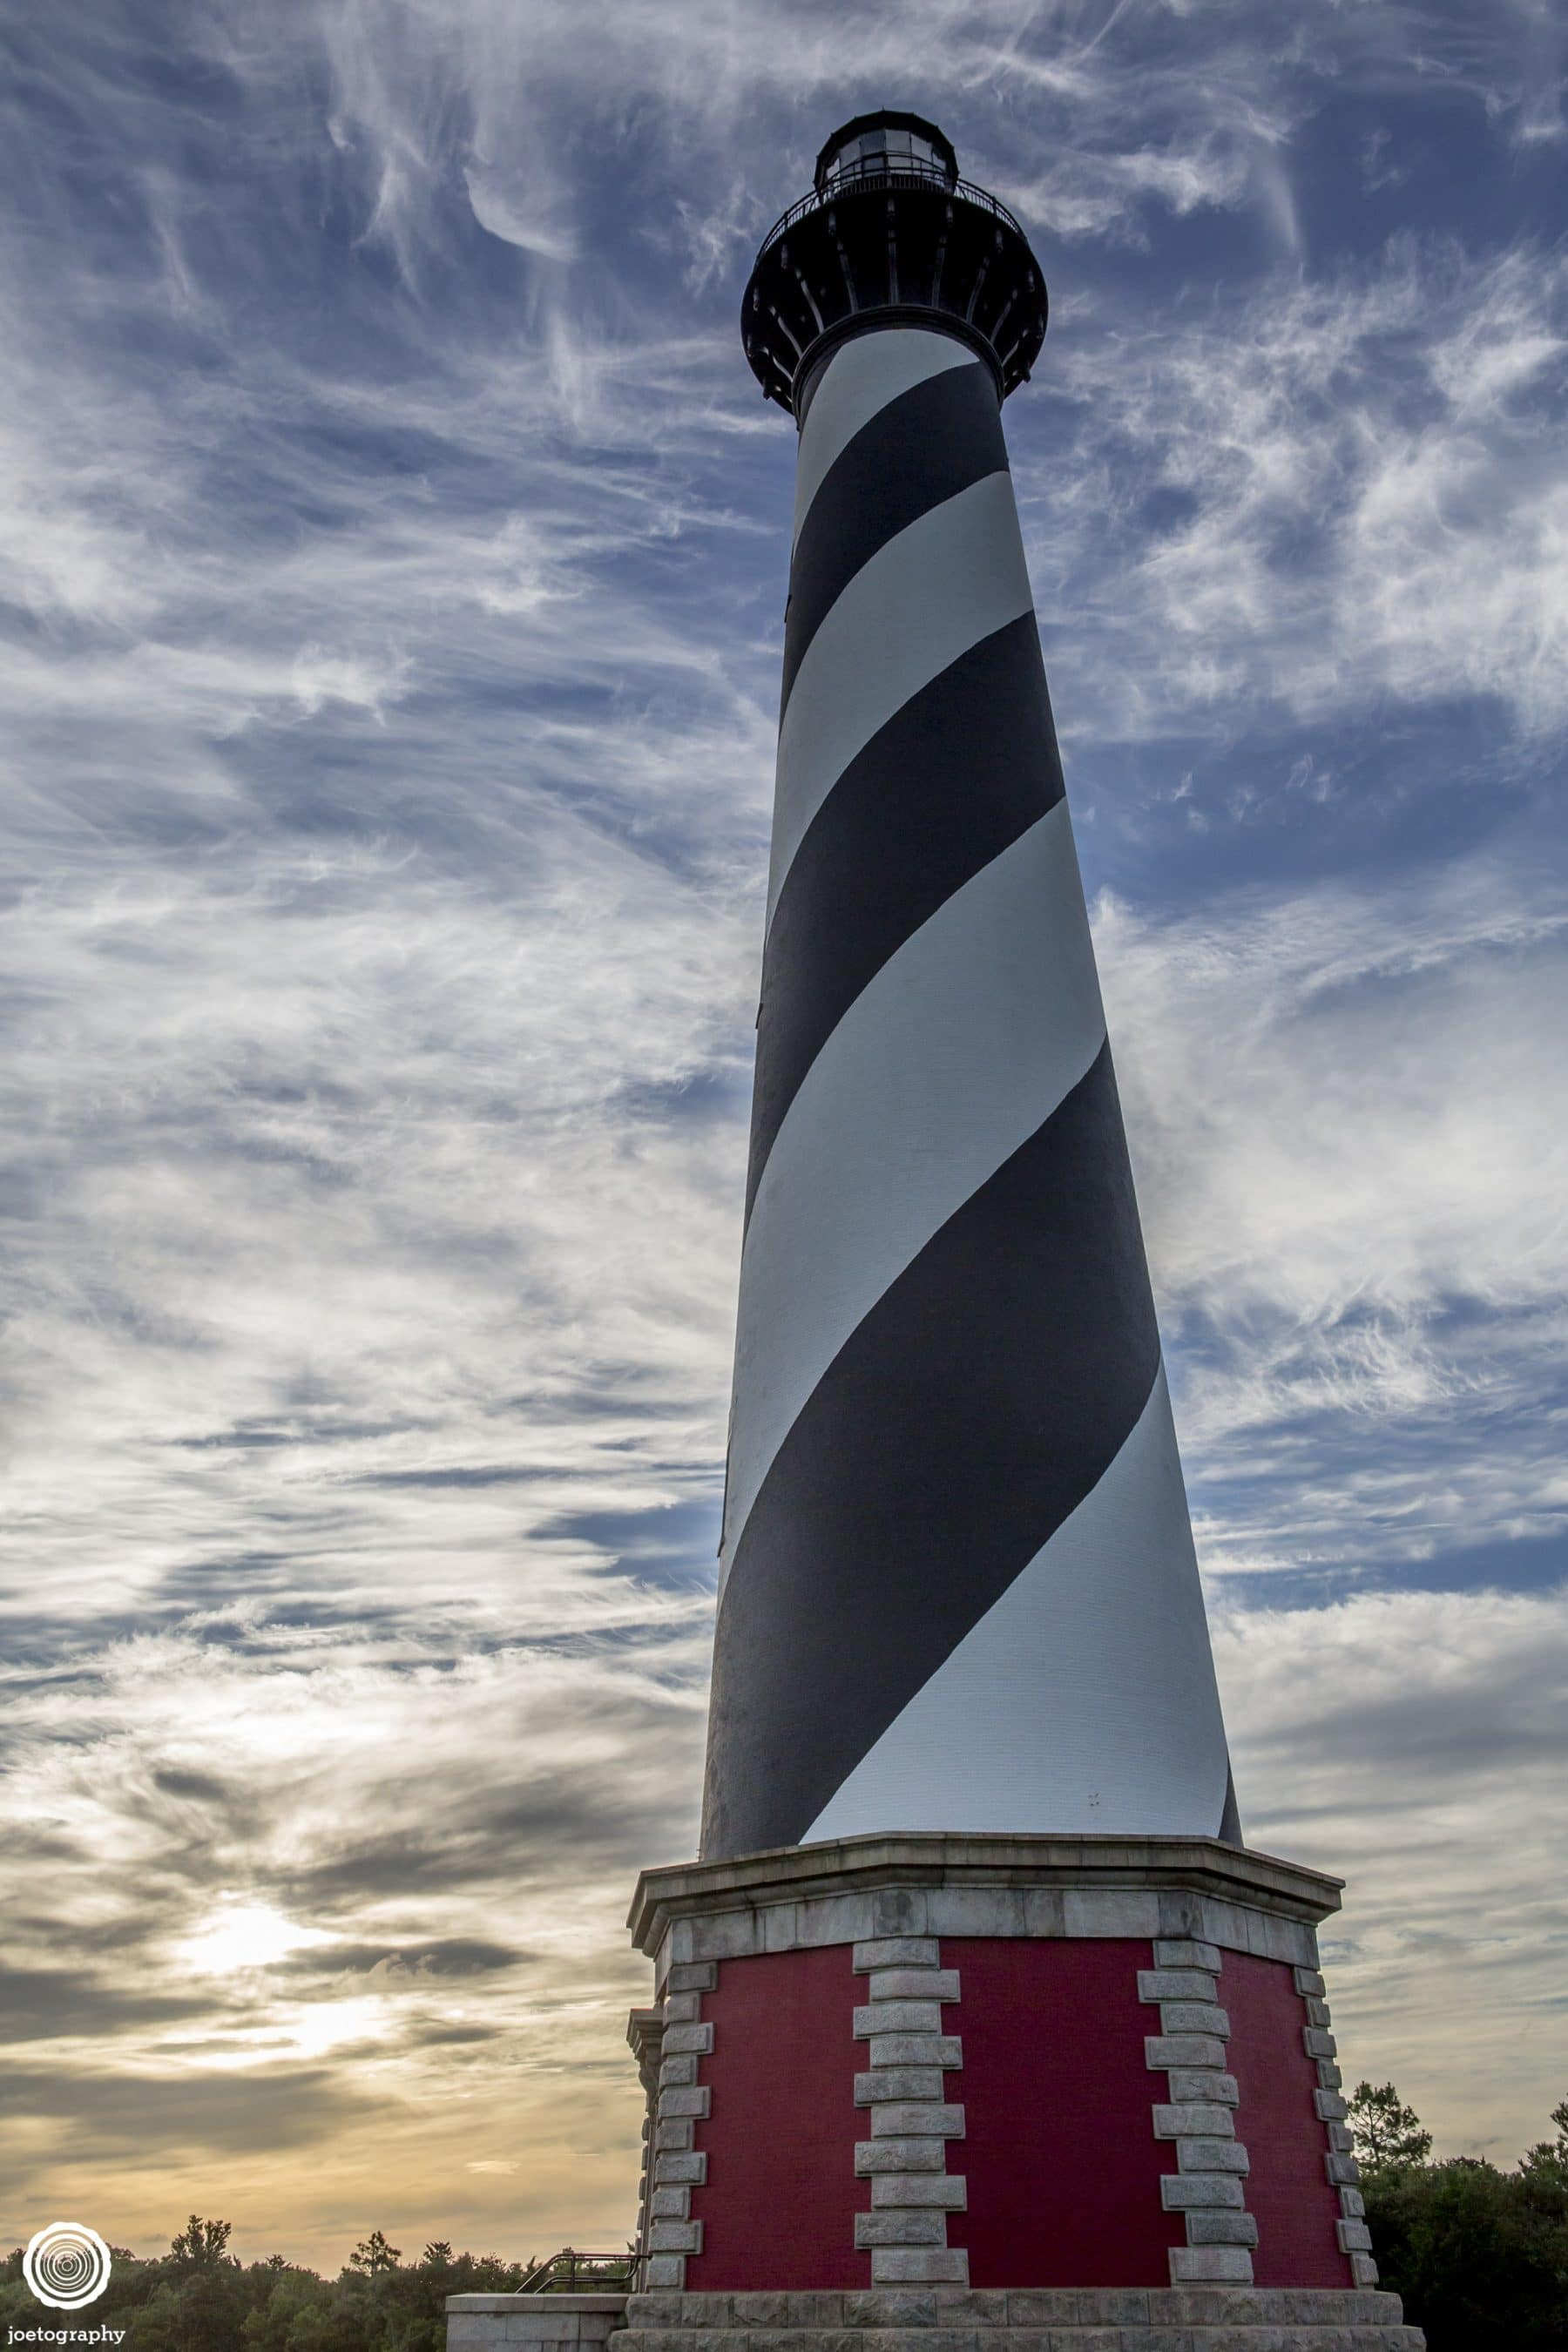 Outer-Banks-North-Carolina-Travel-Photography-46